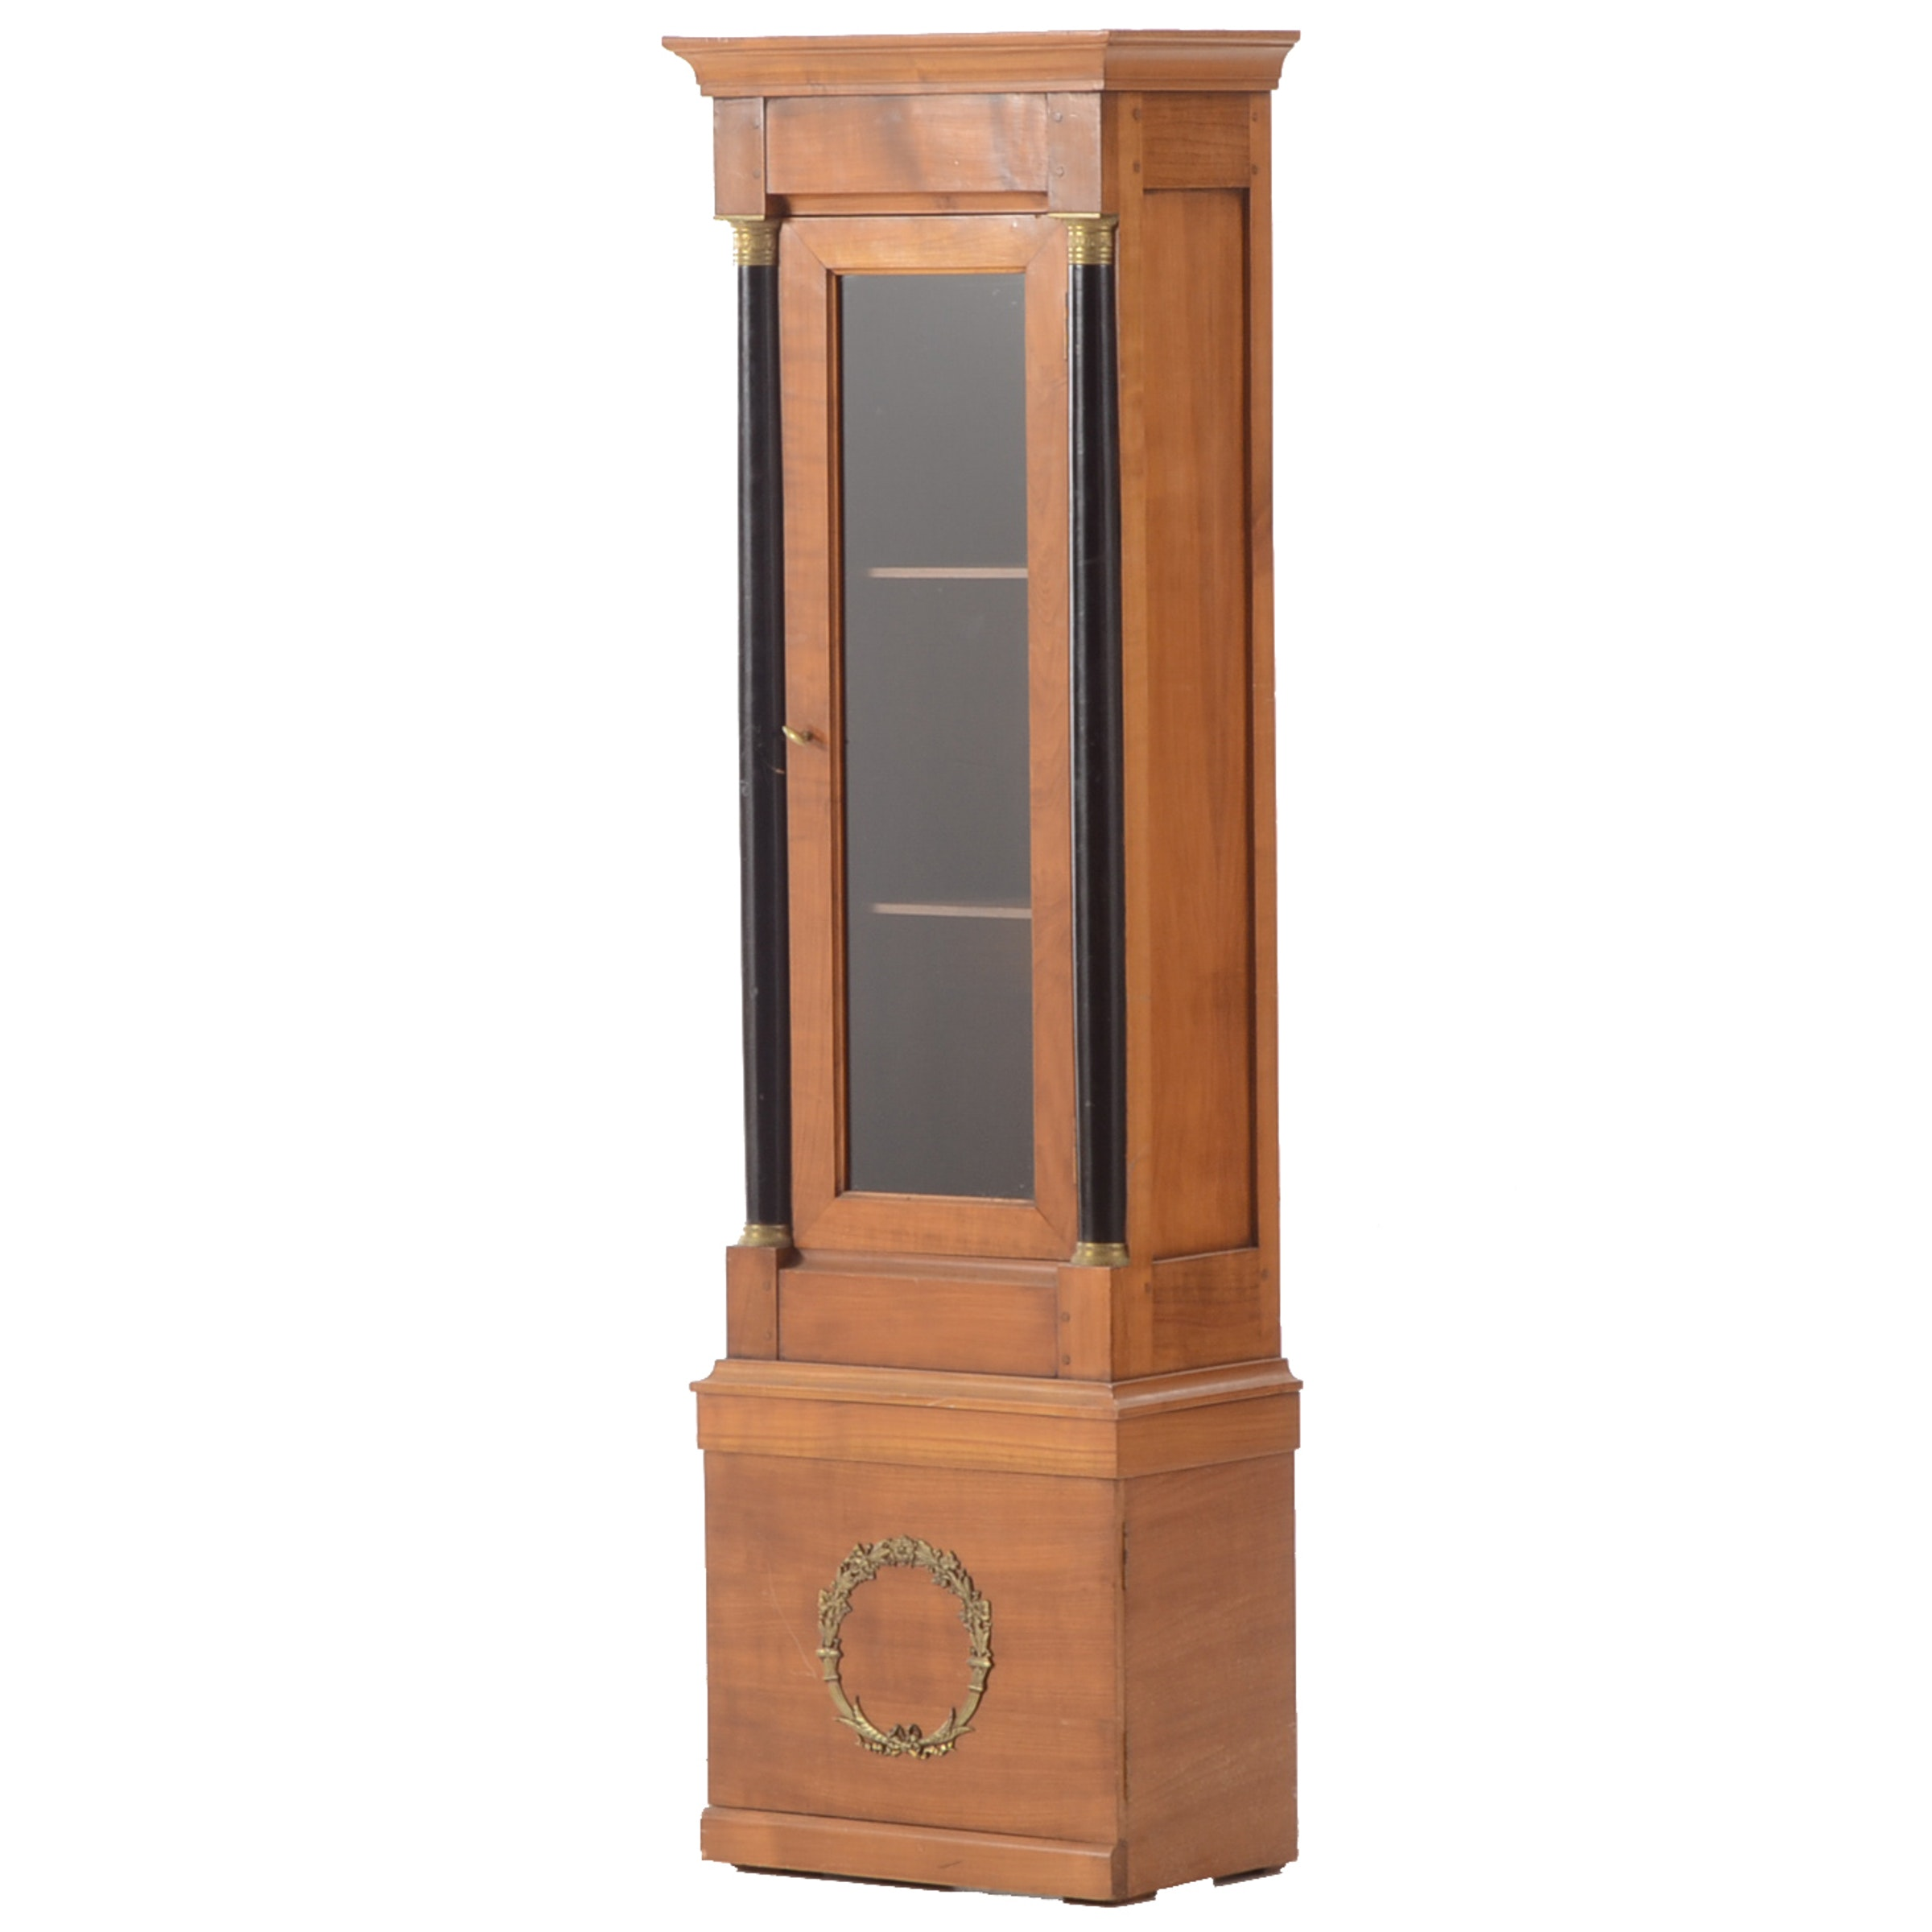 American Empire Style Display Cabinet